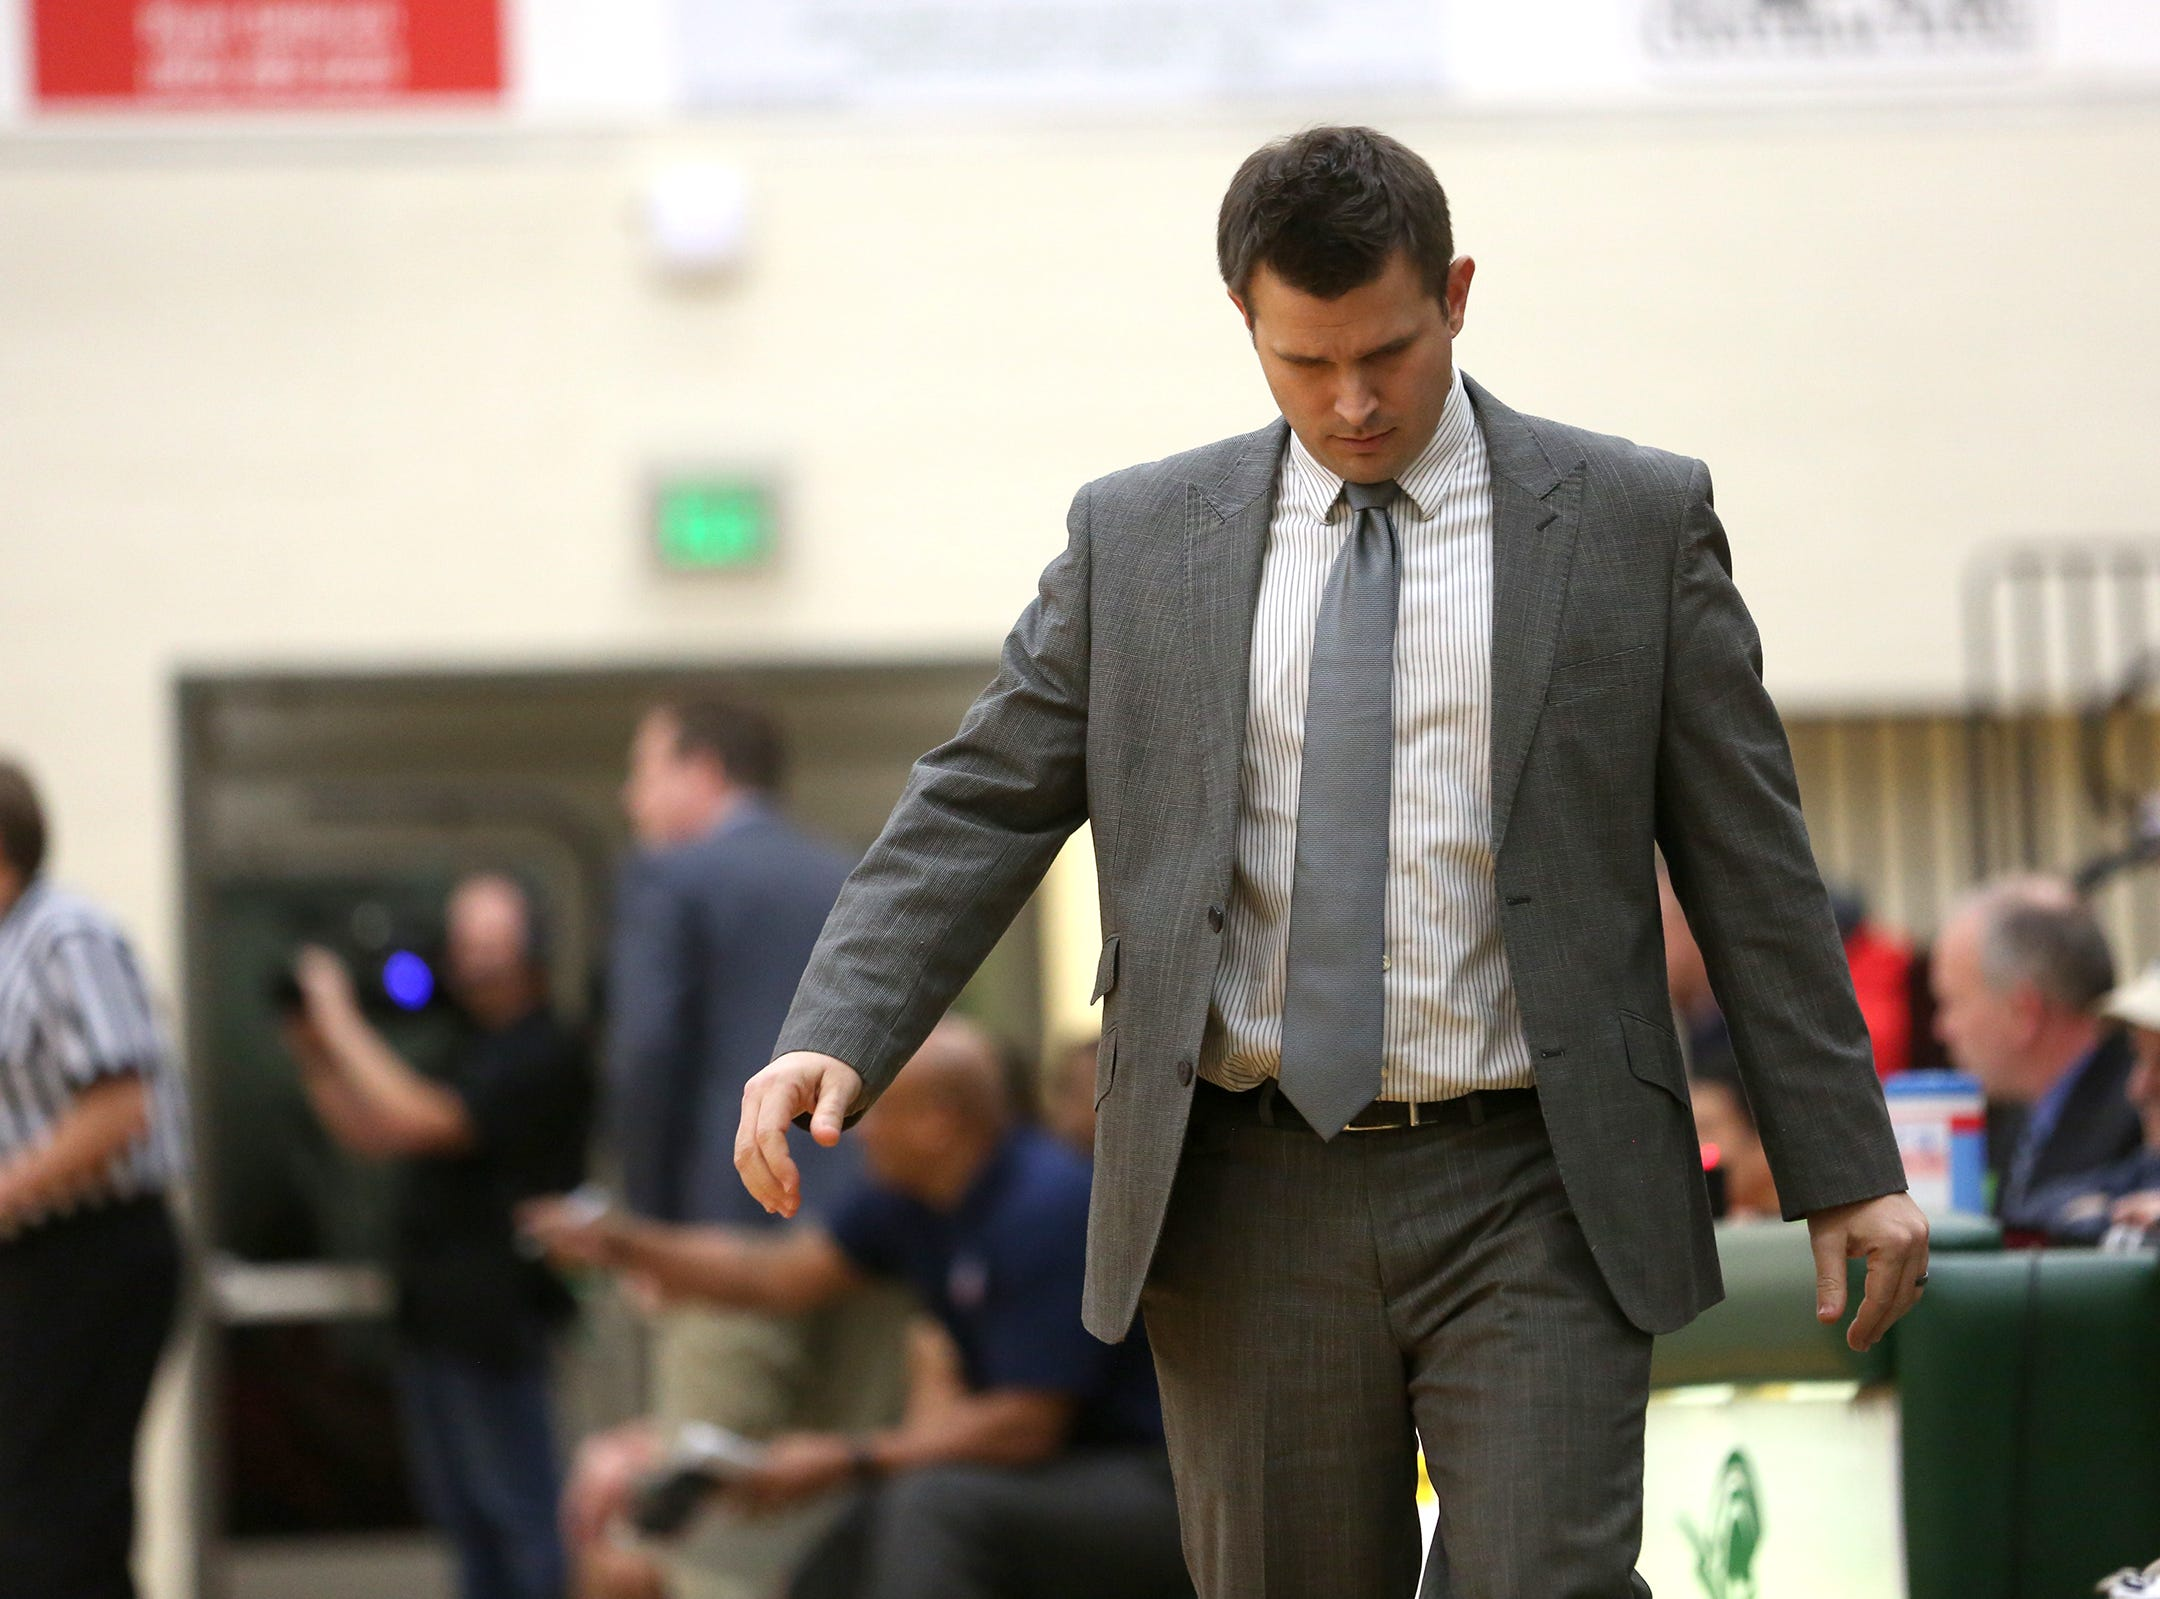 West Salem's head coach Travis Myers during the West Salem vs. Westview 6A Boys Basketball State Championships first round at West Salem High School in Salem on Tuesday, Feb. 26, 2019.